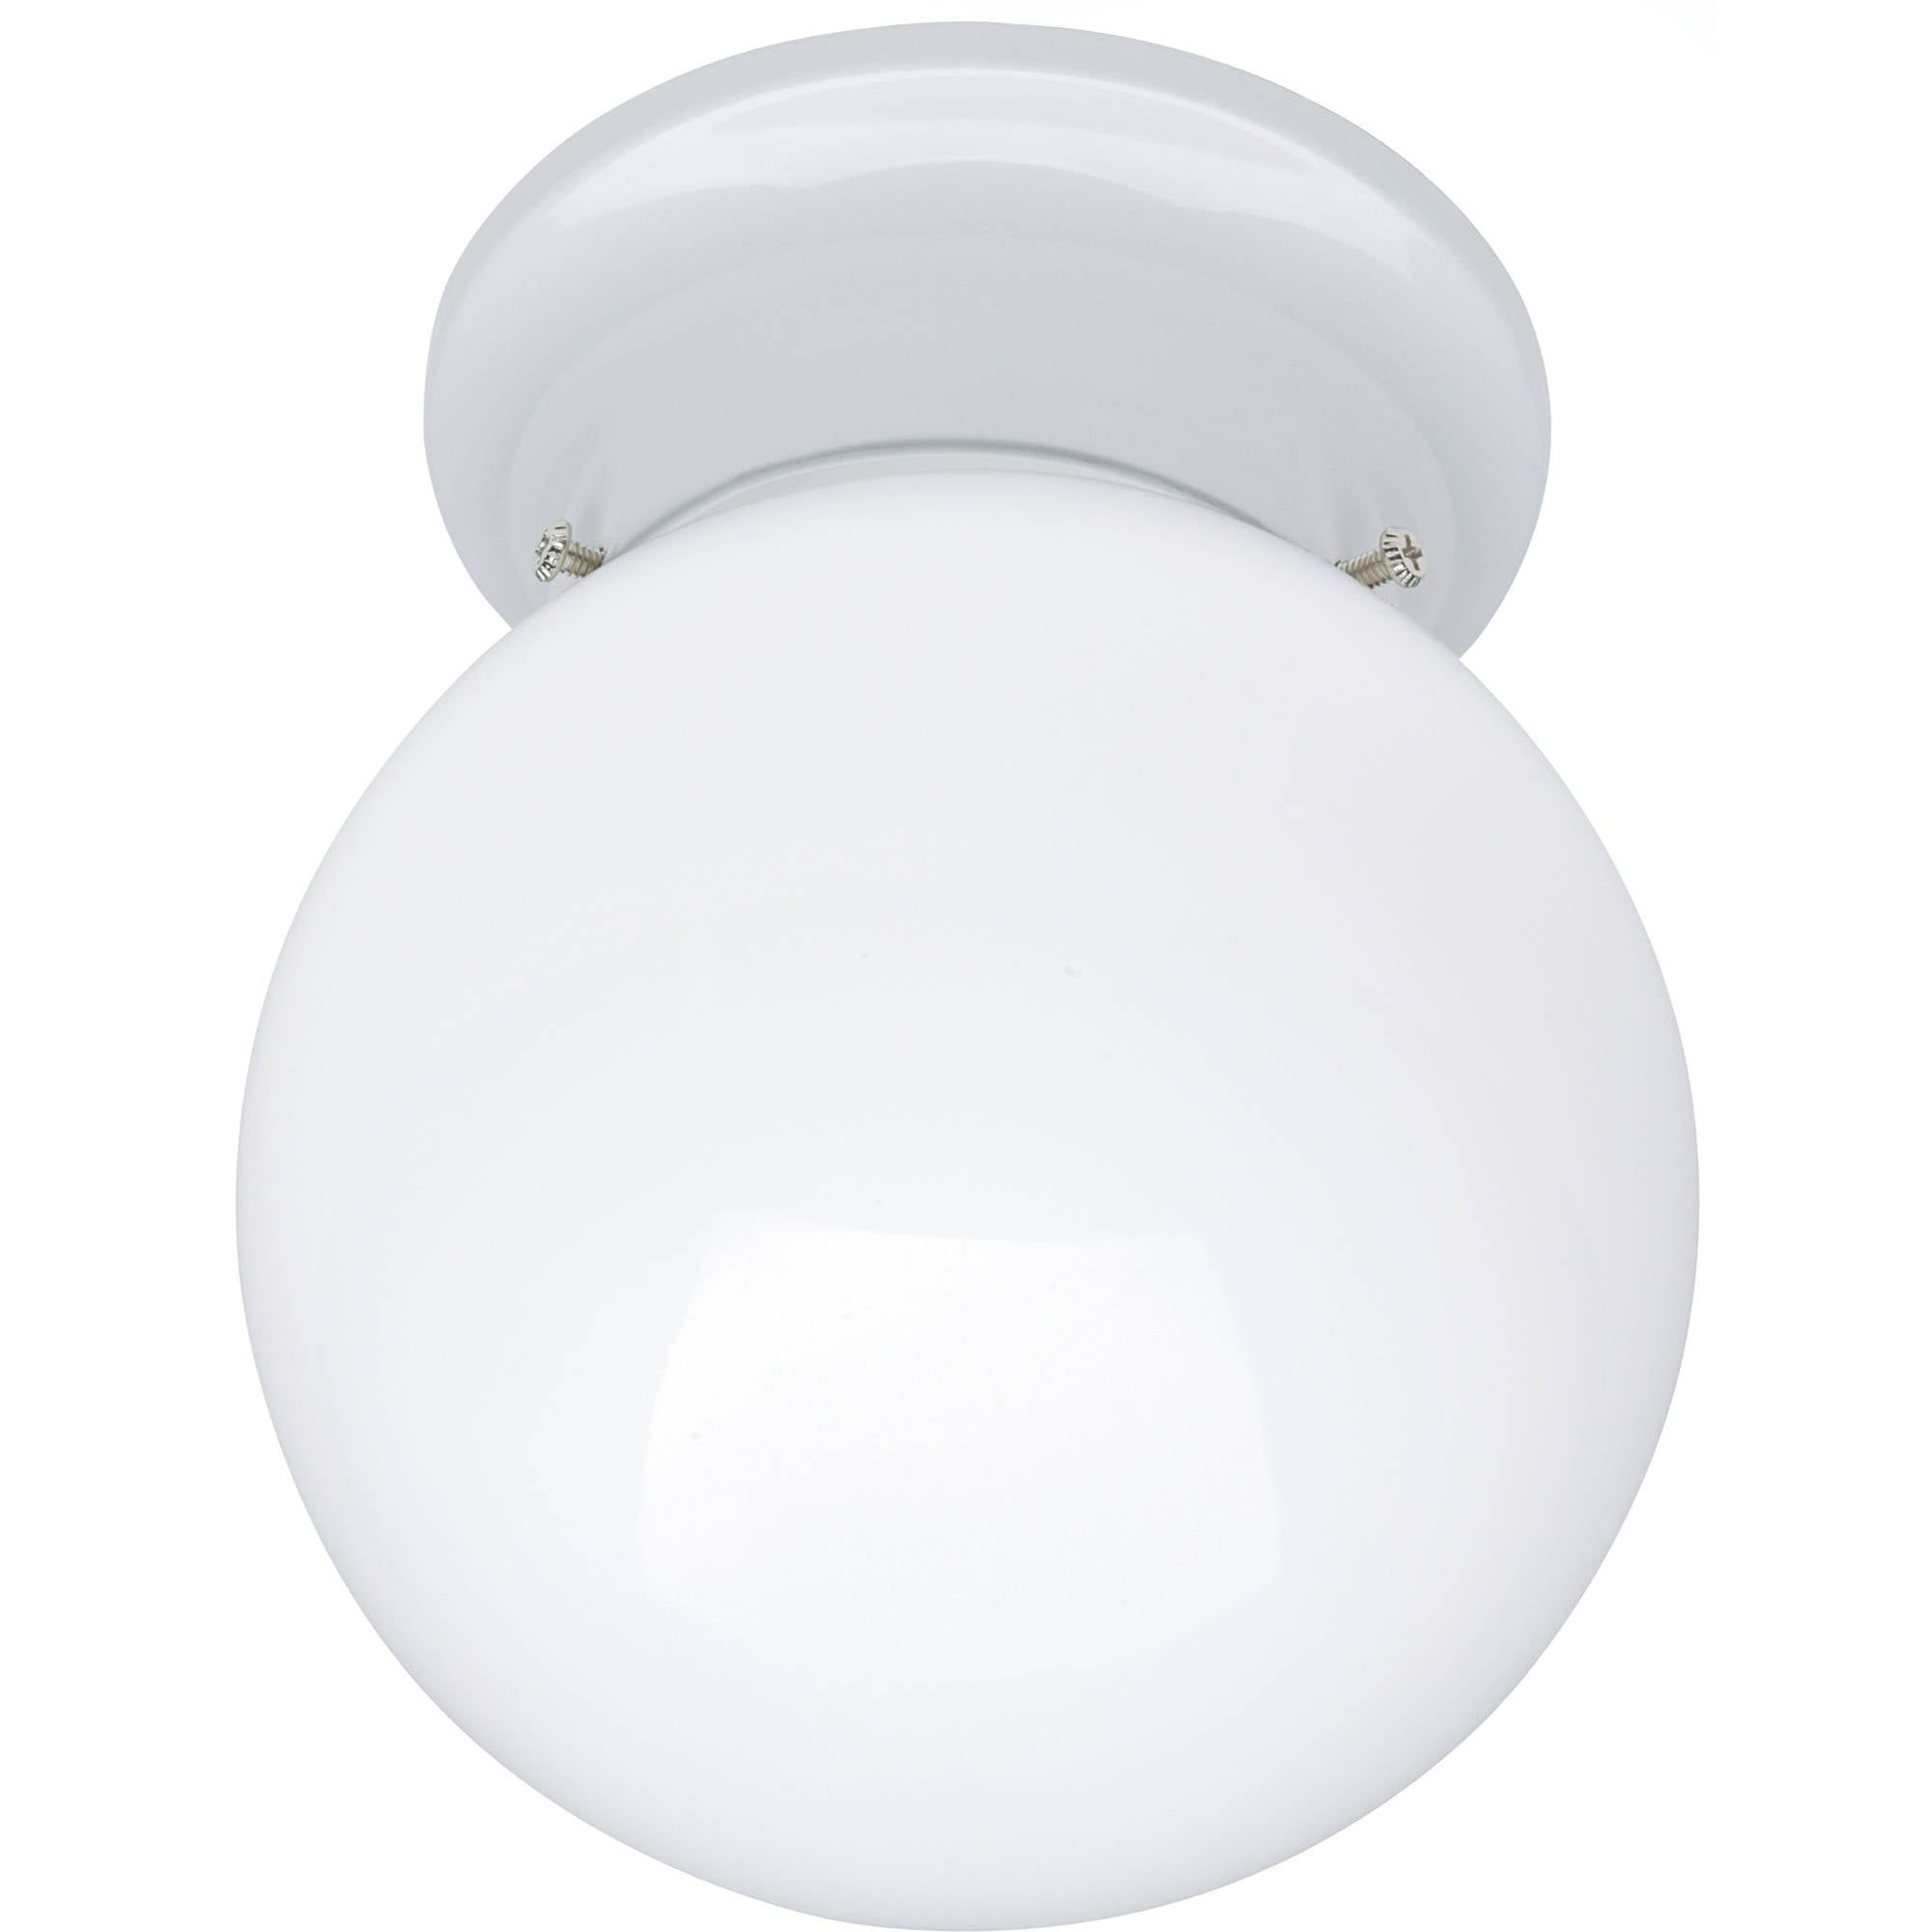 "Chapter Indoor 6"" Globe Ceiling Light, White by"